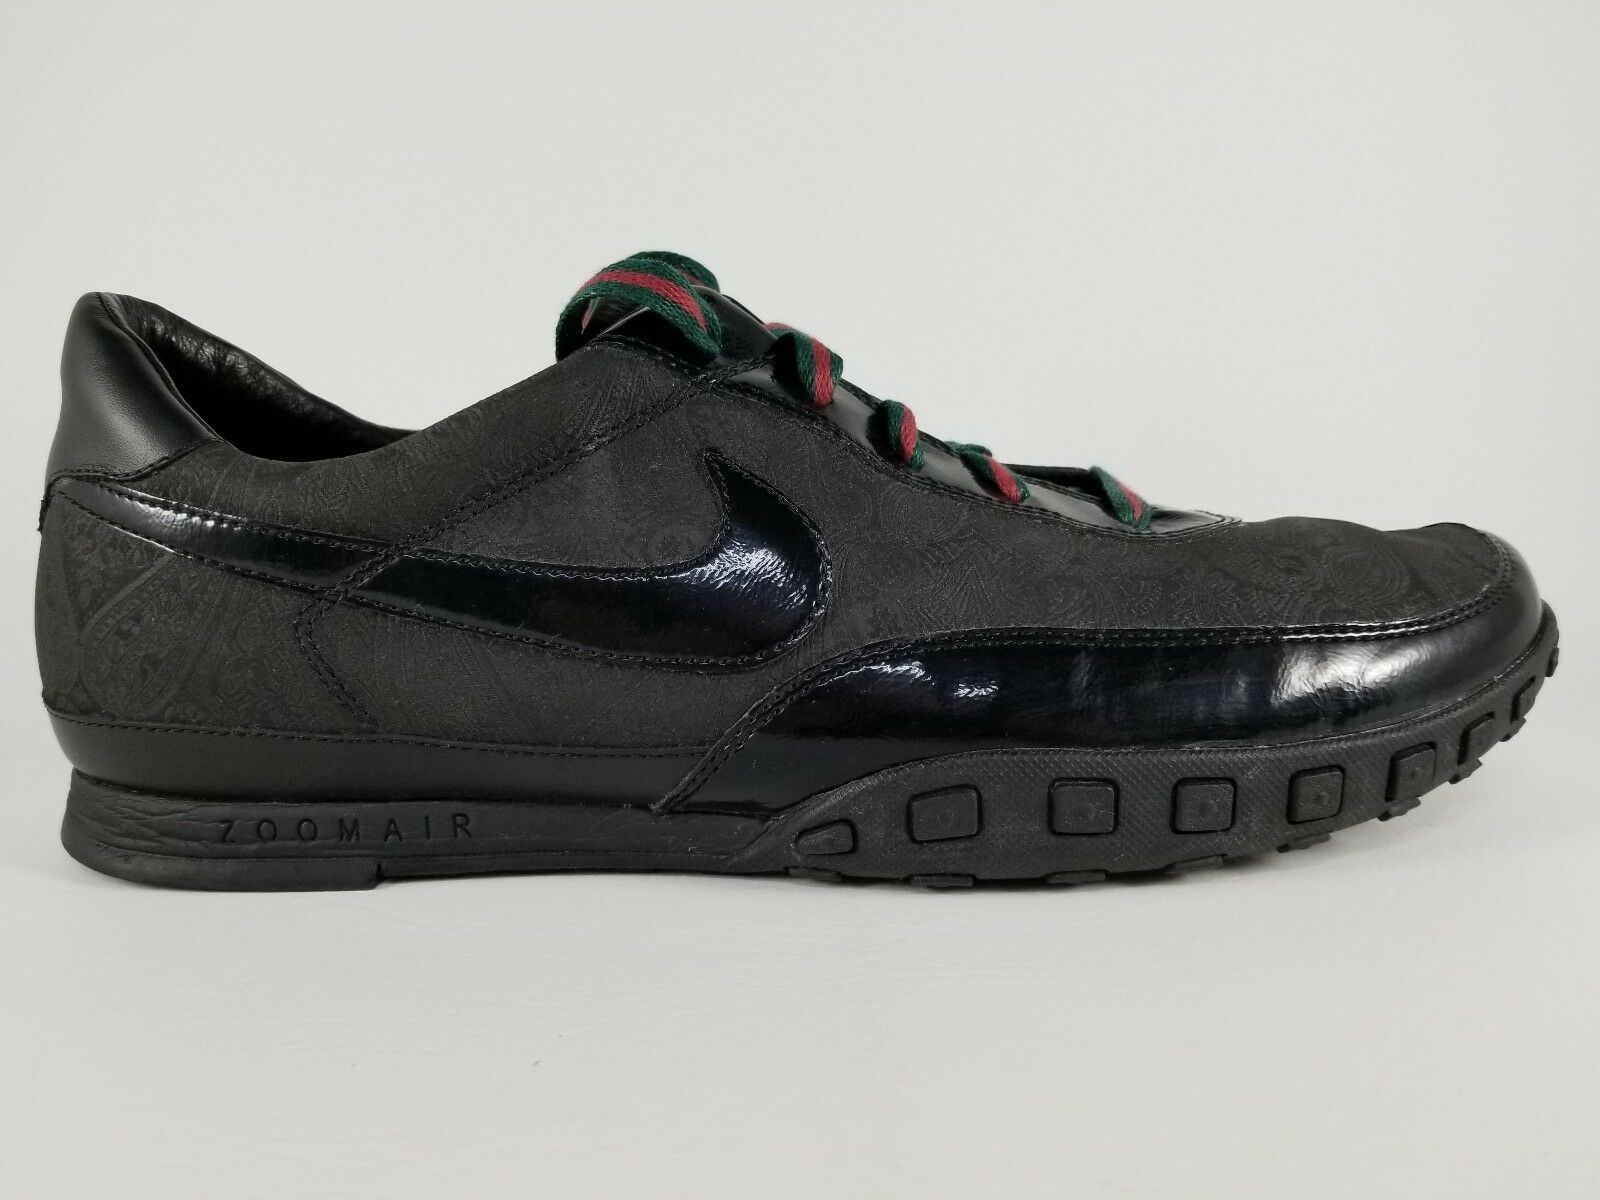 Nike Waffle Racer III 3 Athletic Shoes SZ 14 Mens Sneakers Black Green Red RARE